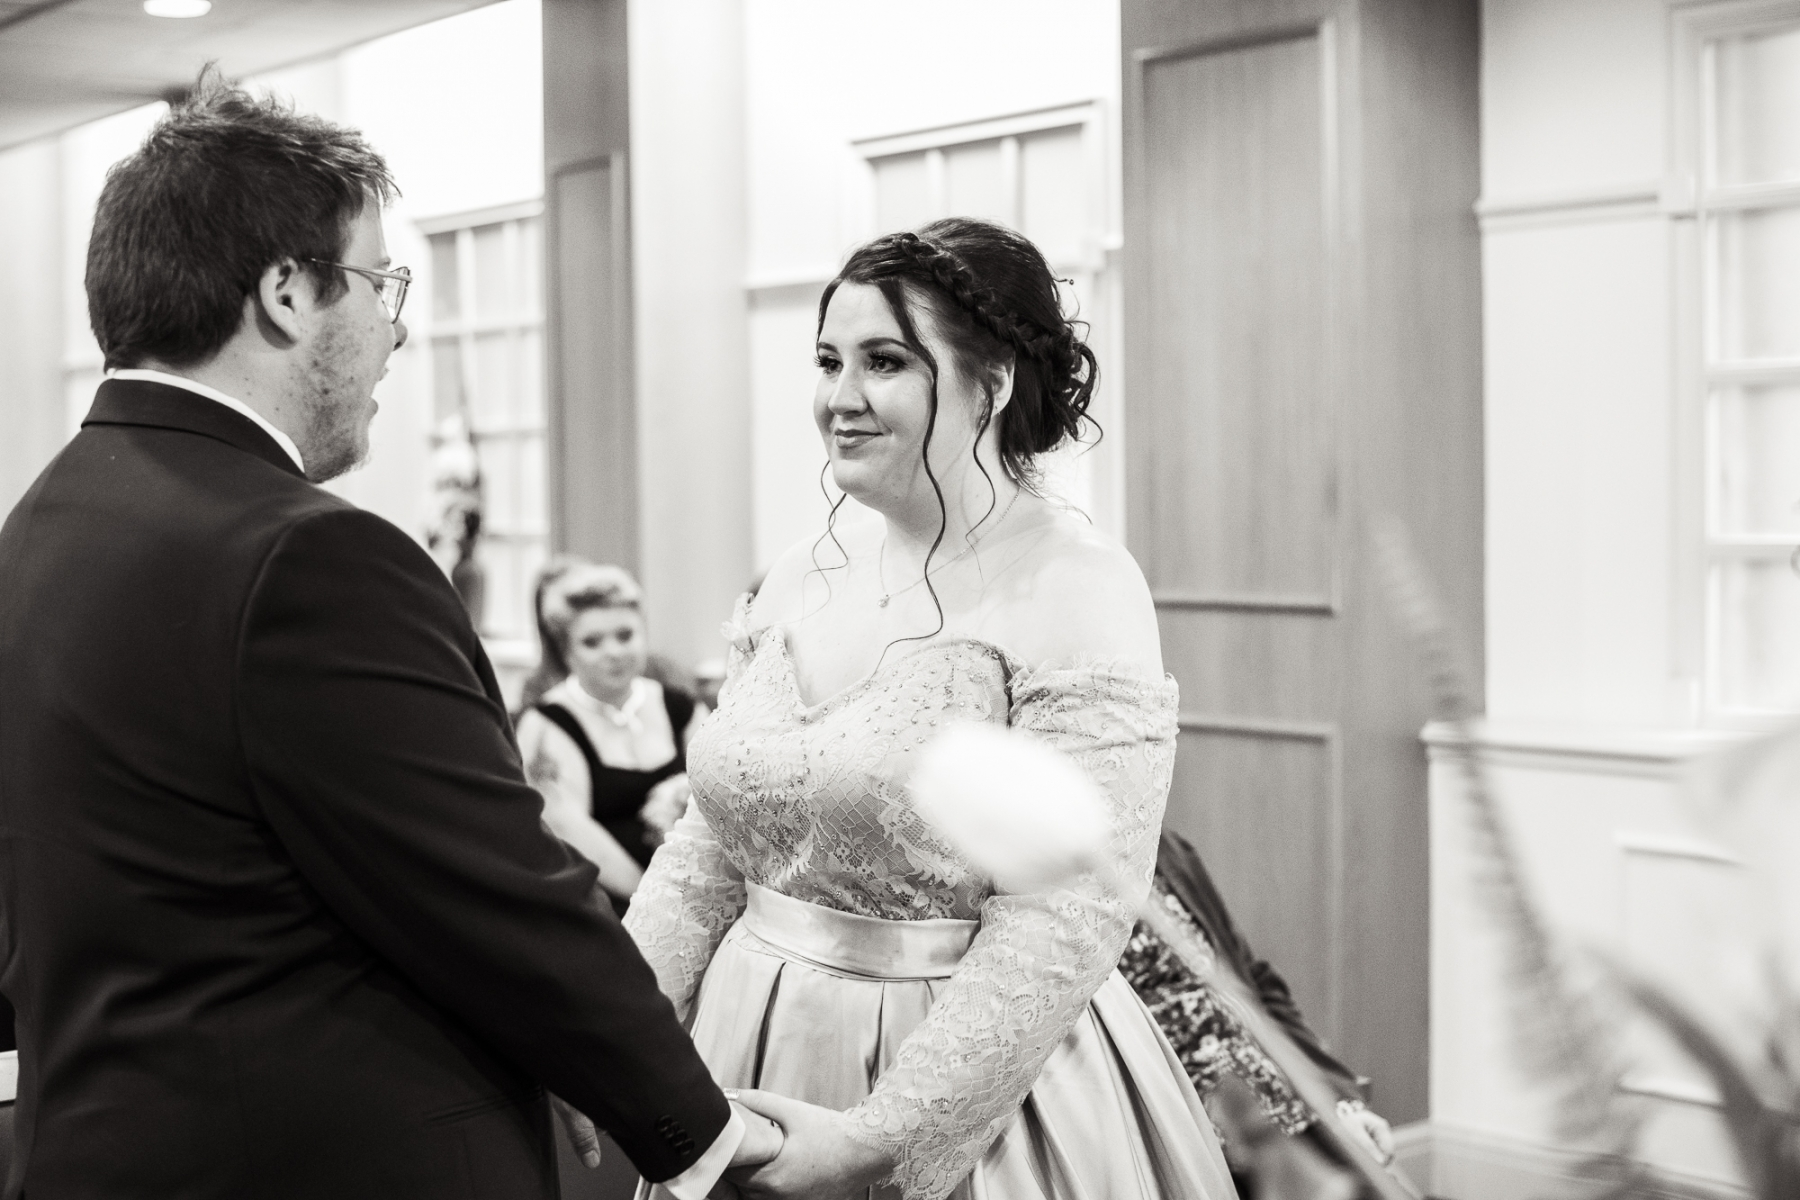 Candid Documentary Reportage Wedding Day Photography and Elegant Wedding Couple Portrait by Worcestershire wedding photographer Renata Clarke